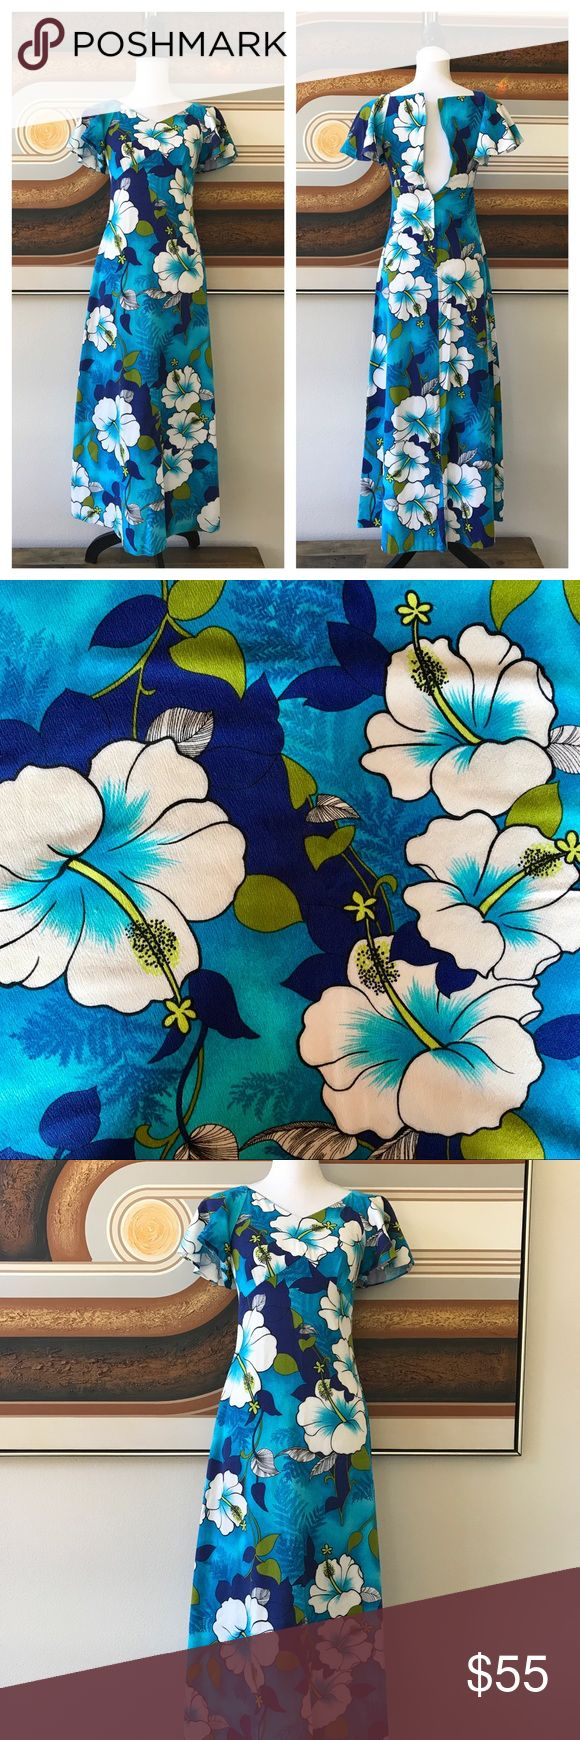 Vintage 60s Hawaiian Floral Blue Maxi Dress Sz 2 One of my favorite vintage Hawaiian finds! Super bright floral (hibiscus) dress w/butterfly sleeves, empire waist & hidden back zipper. Color palette: turquoise, cobalt, white, black, olive & chartreuse. Used to fit me, but alas, no more.  Pomare Hawaii brand. No size so I'm guessing size 2/small/XS (but please check measurements!). Excellent pre-loved condition w/no flaws. Truly gorgeous! 50s, 70s, mod, retro, festival, Hawaii, cruise, party…